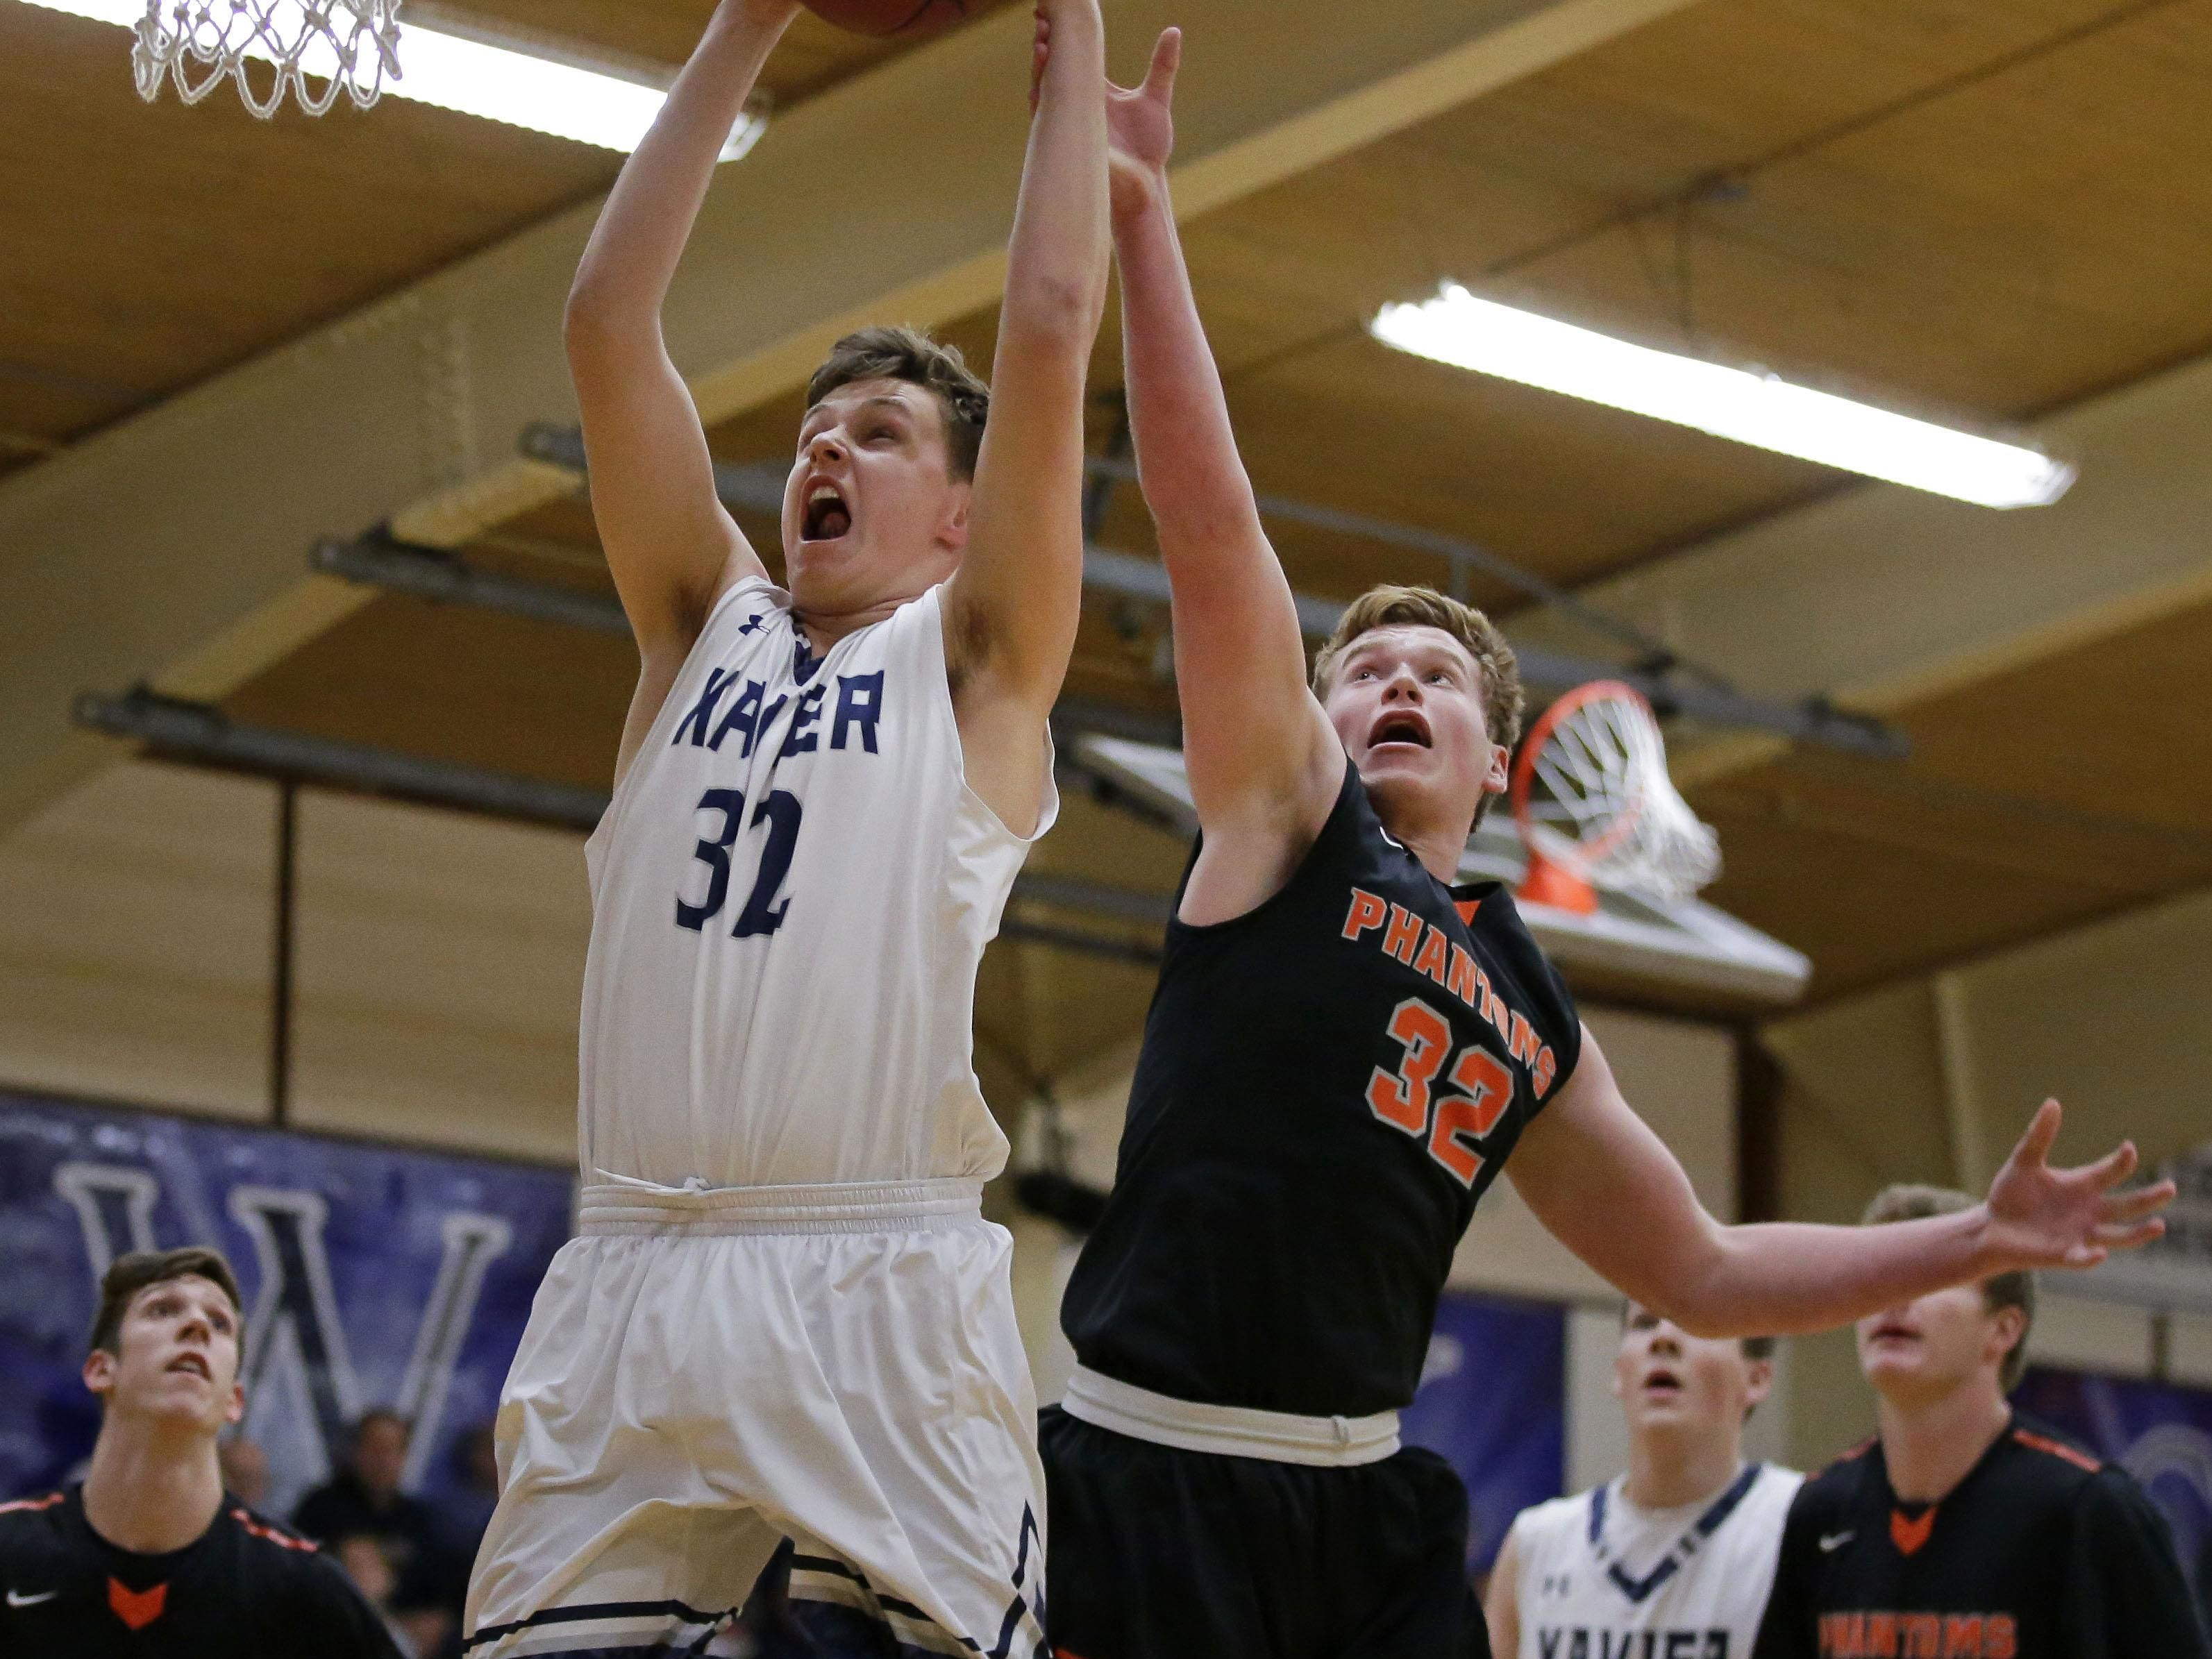 Will Schlicht of Xavier battles under the basket with Jake Karchinski of West De Pere on Thursday during a Bay Conference boys' basketball game in Appleton.